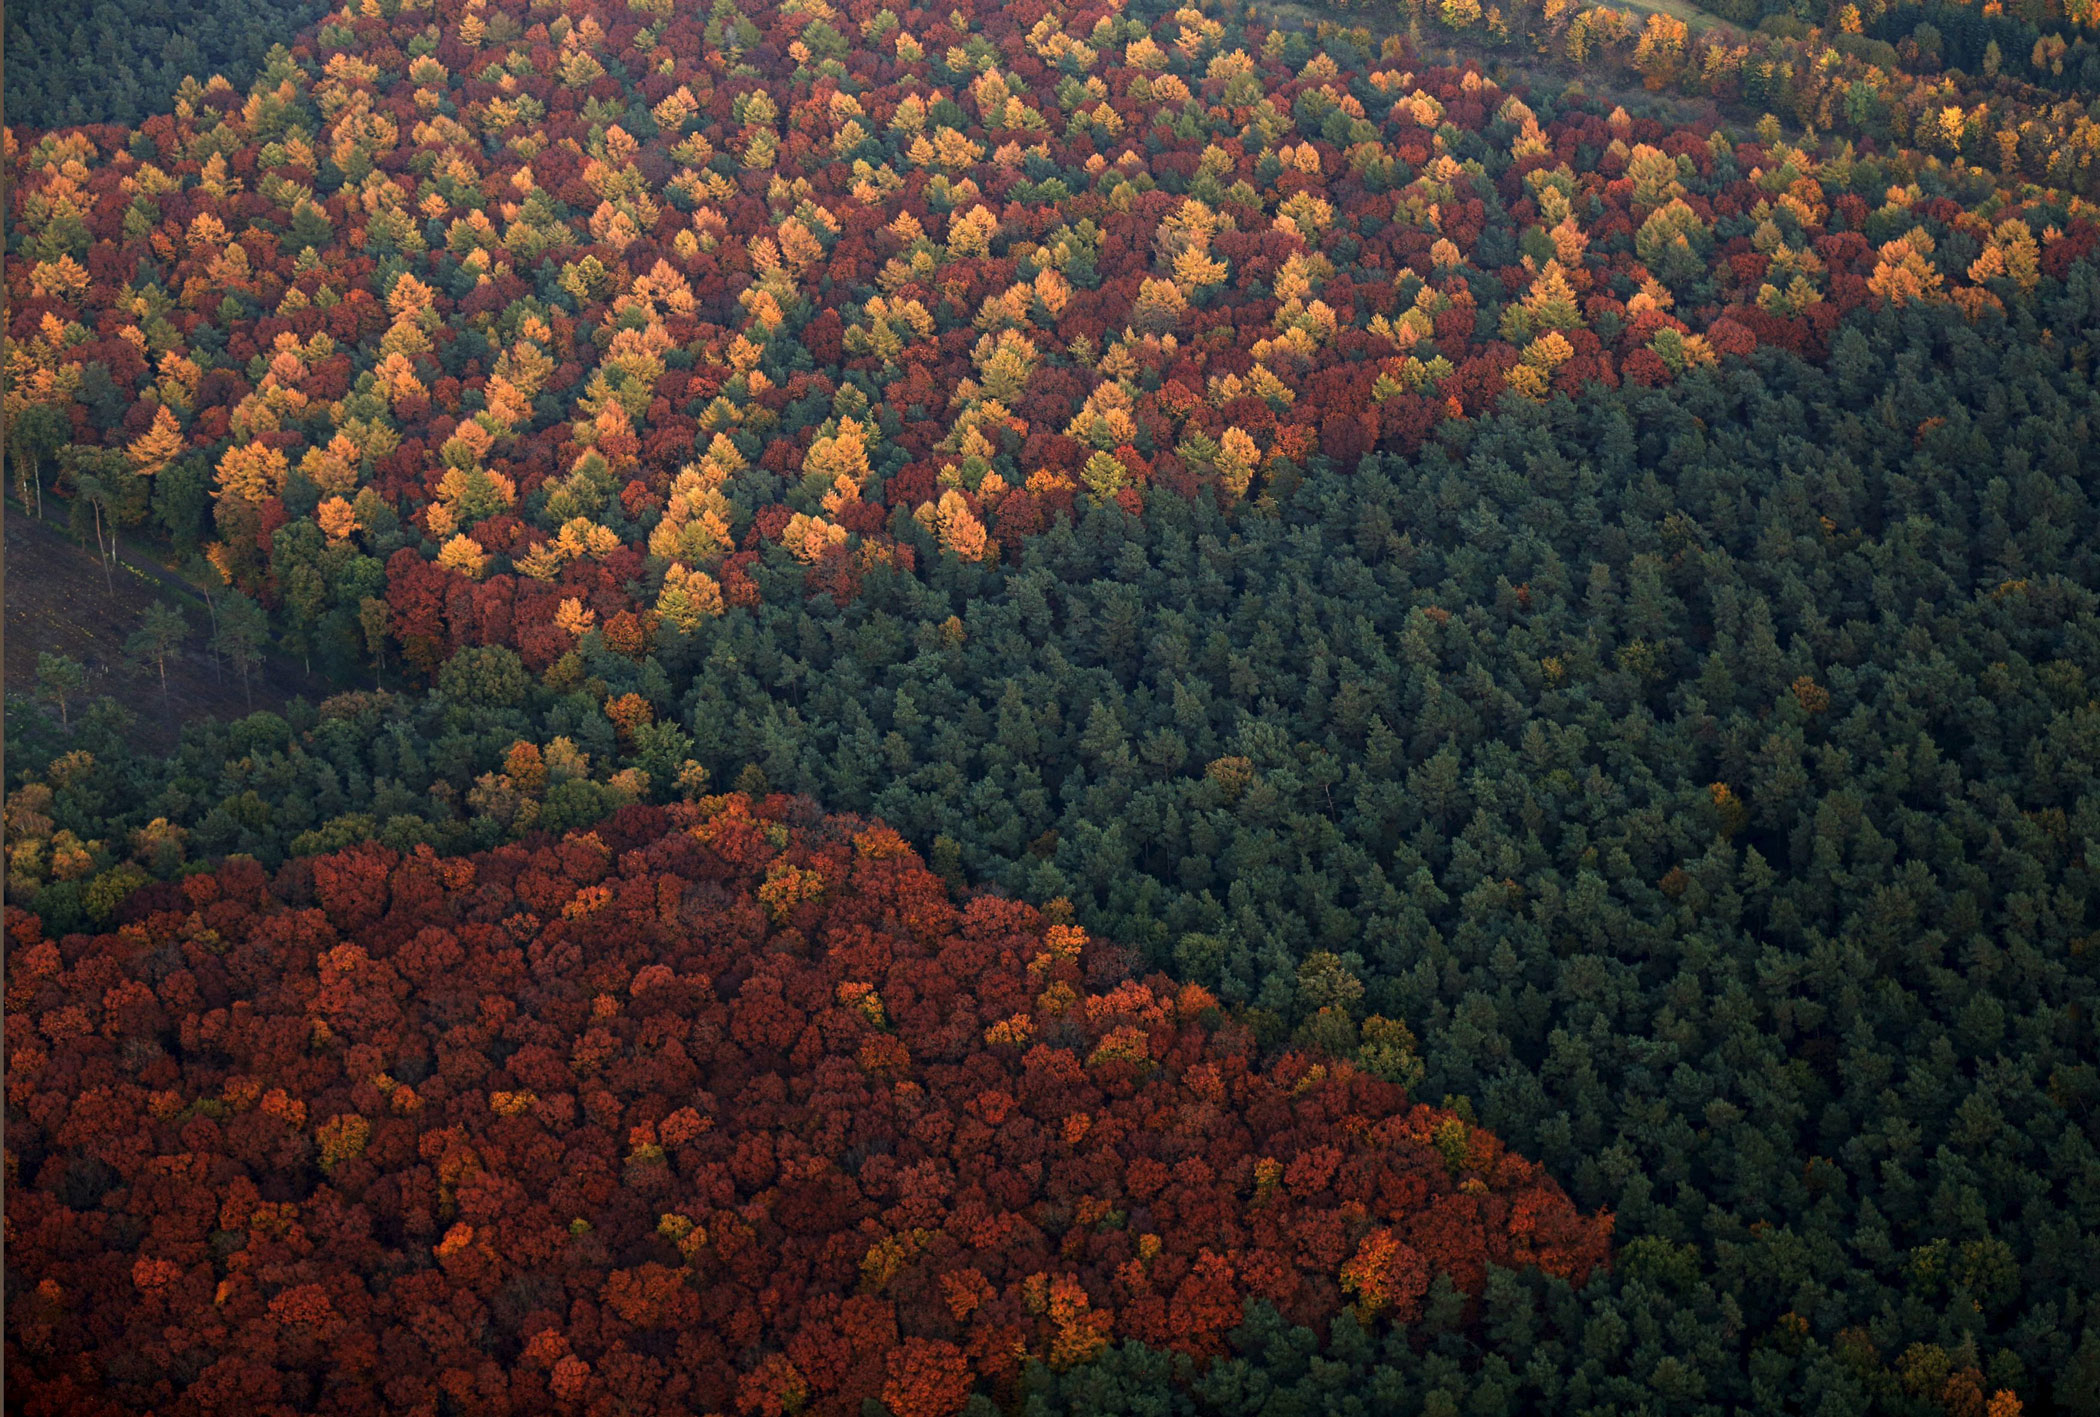 An aerial view shows a mixed forest on a sunny autumn day in Recklinghausen, Germany on Oct. 31, 2015.